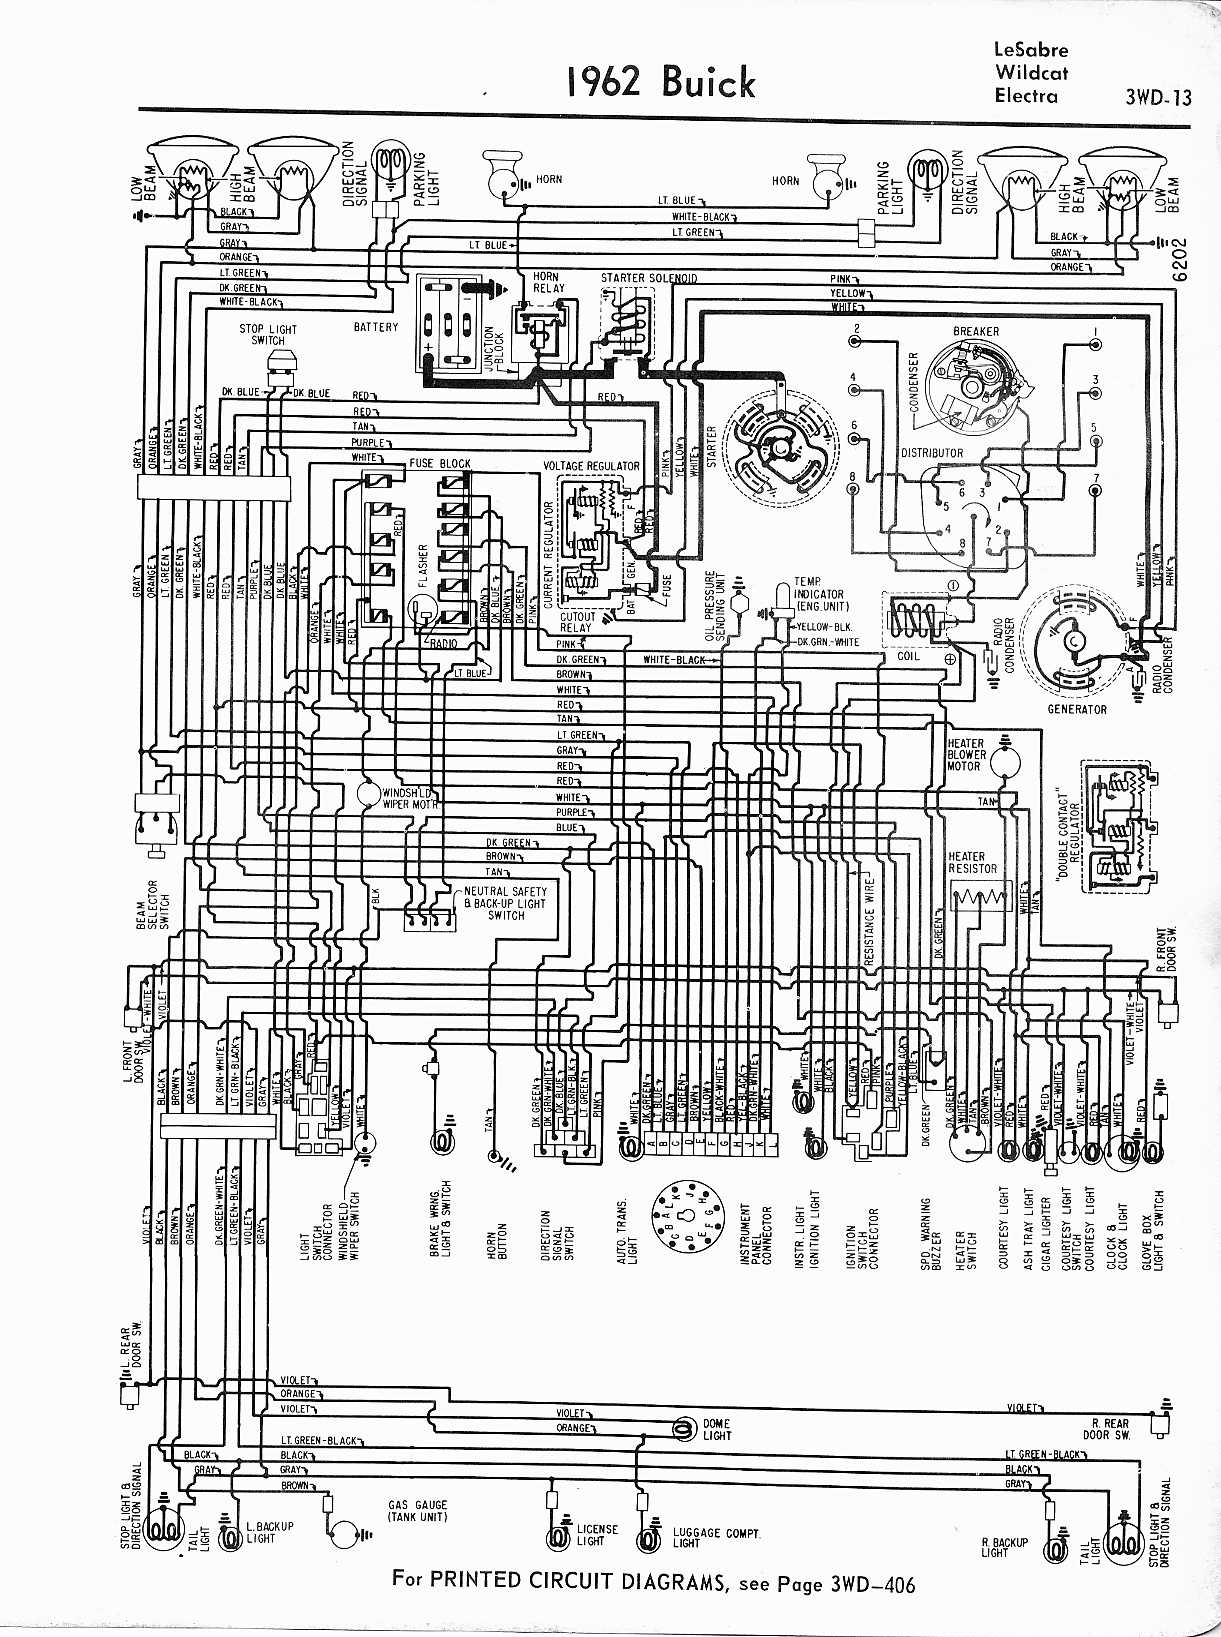 MWireBuic65_3WD 013 buick wiring diagrams 1957 1965 Basic Turn Signal Wiring Diagram at crackthecode.co